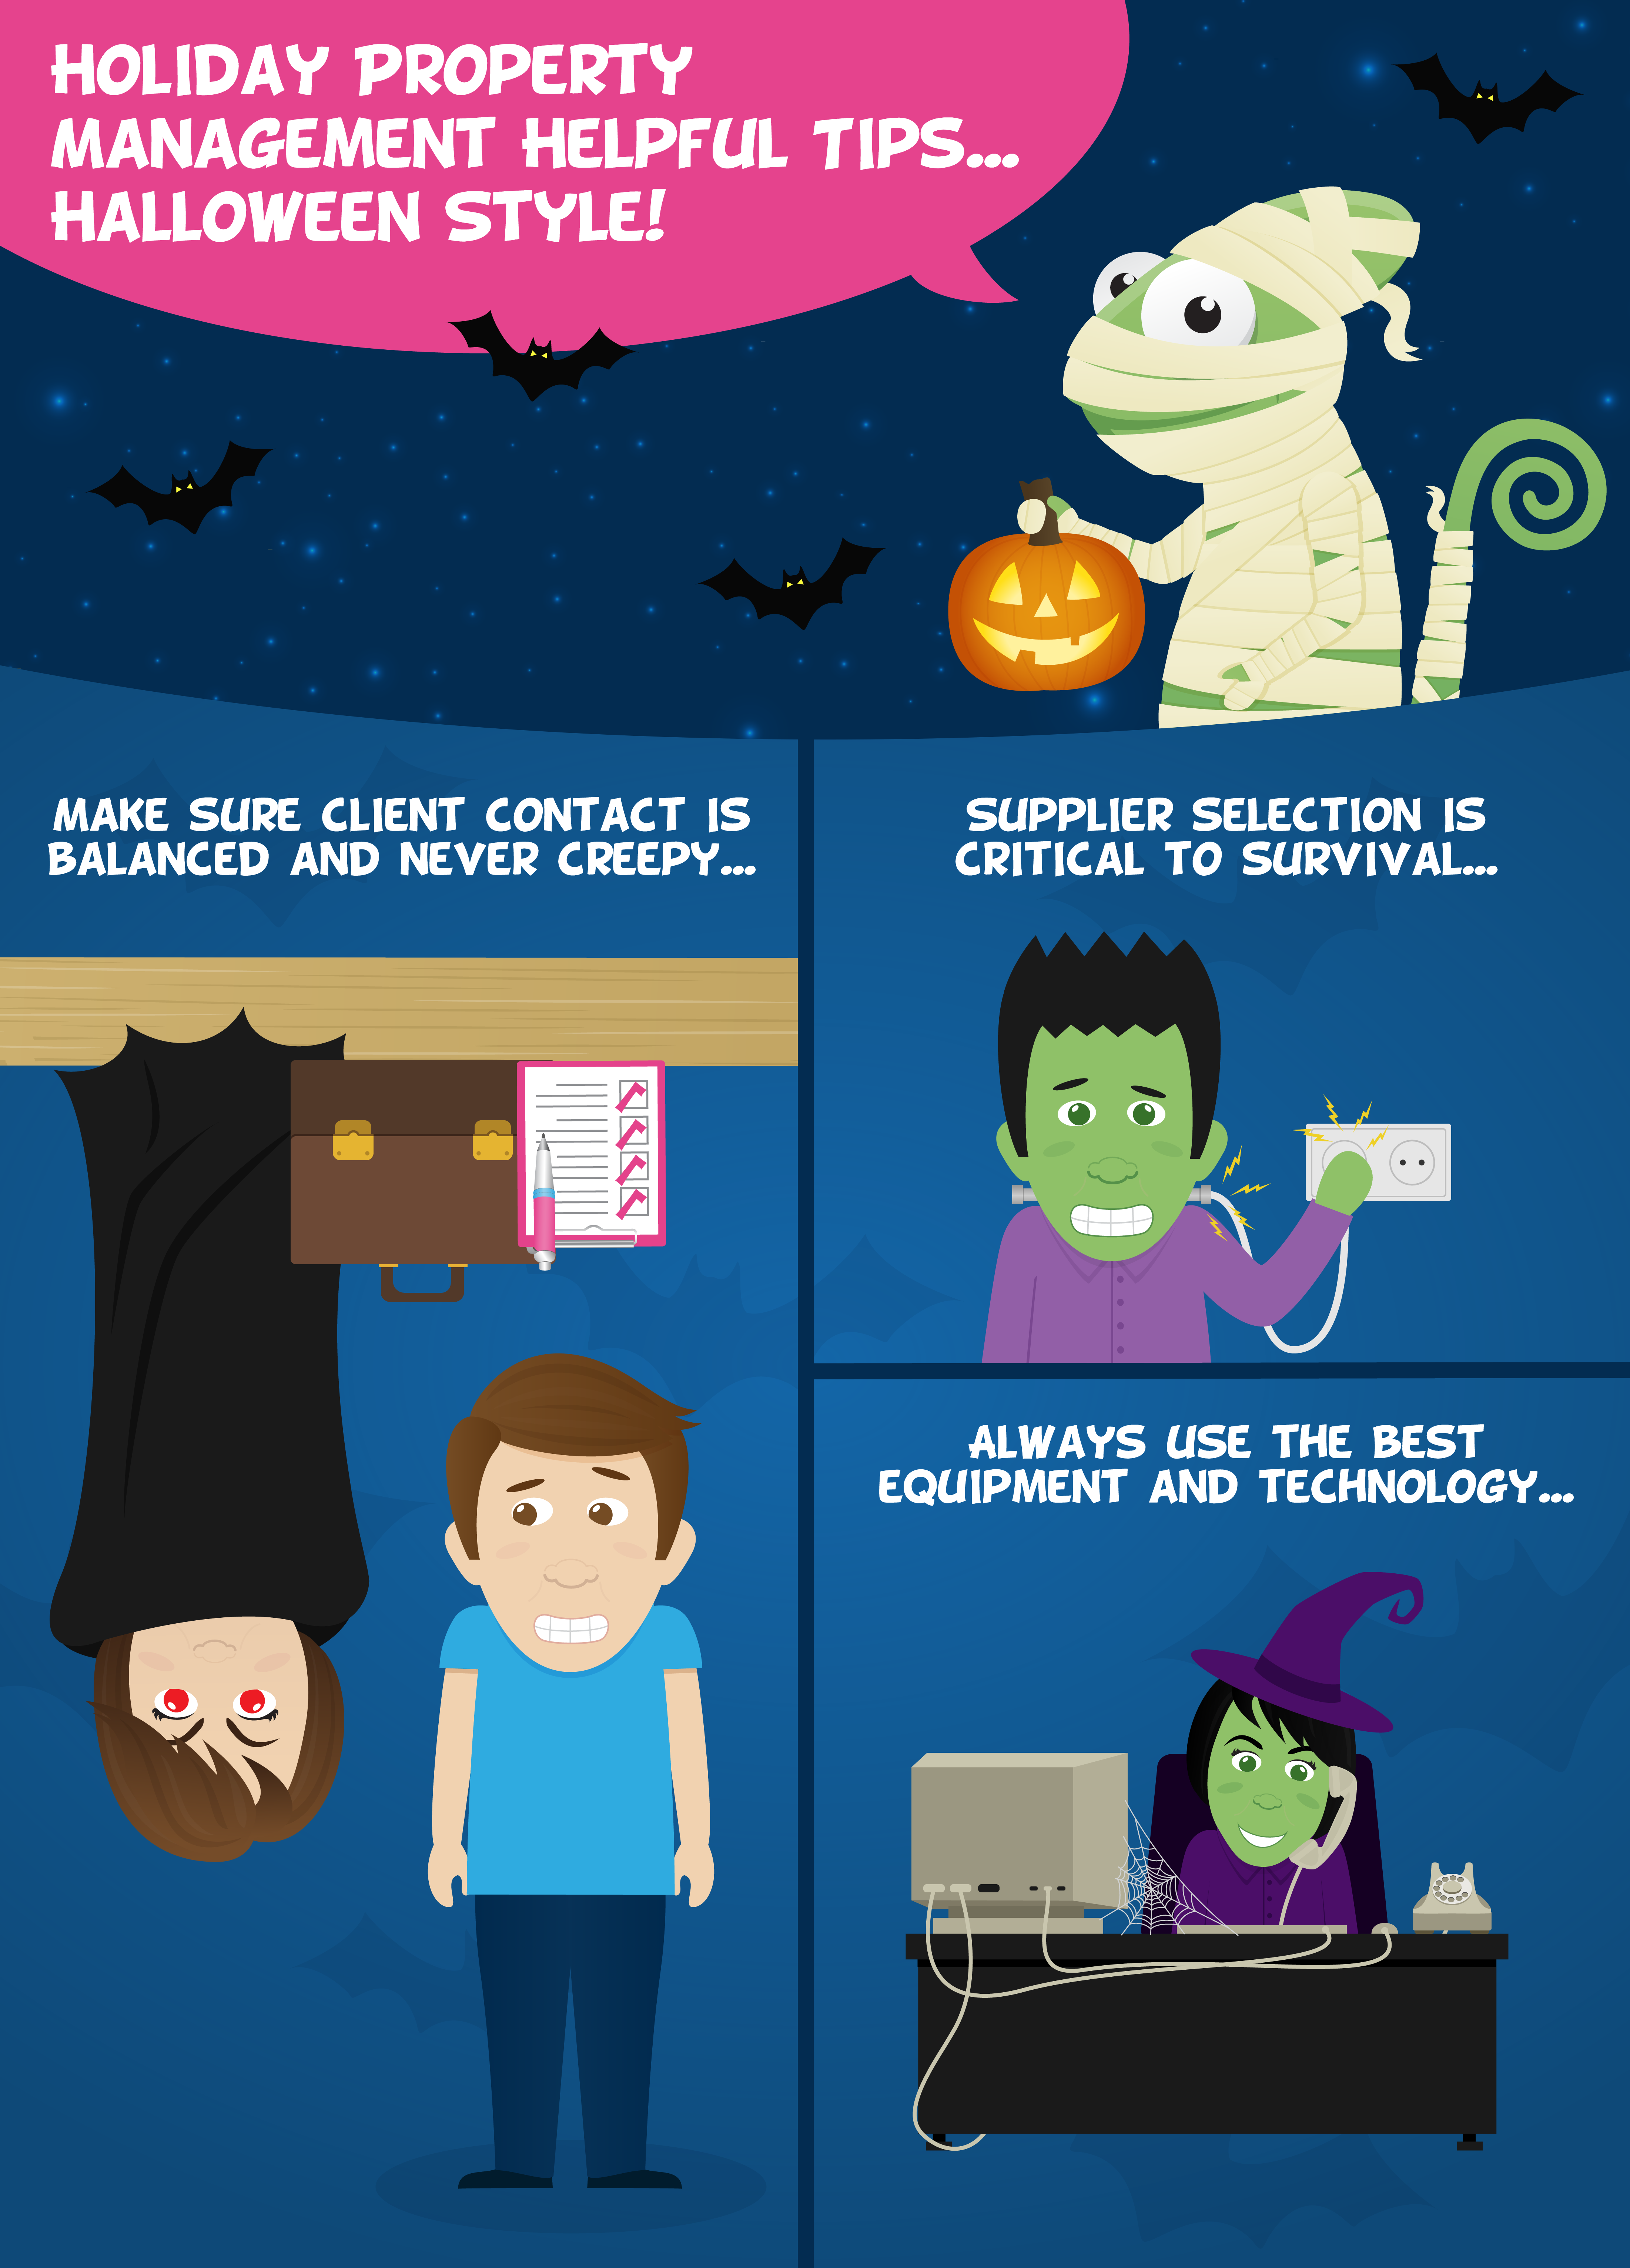 Holiday Property Management Helpful Tips… Halloween Style!